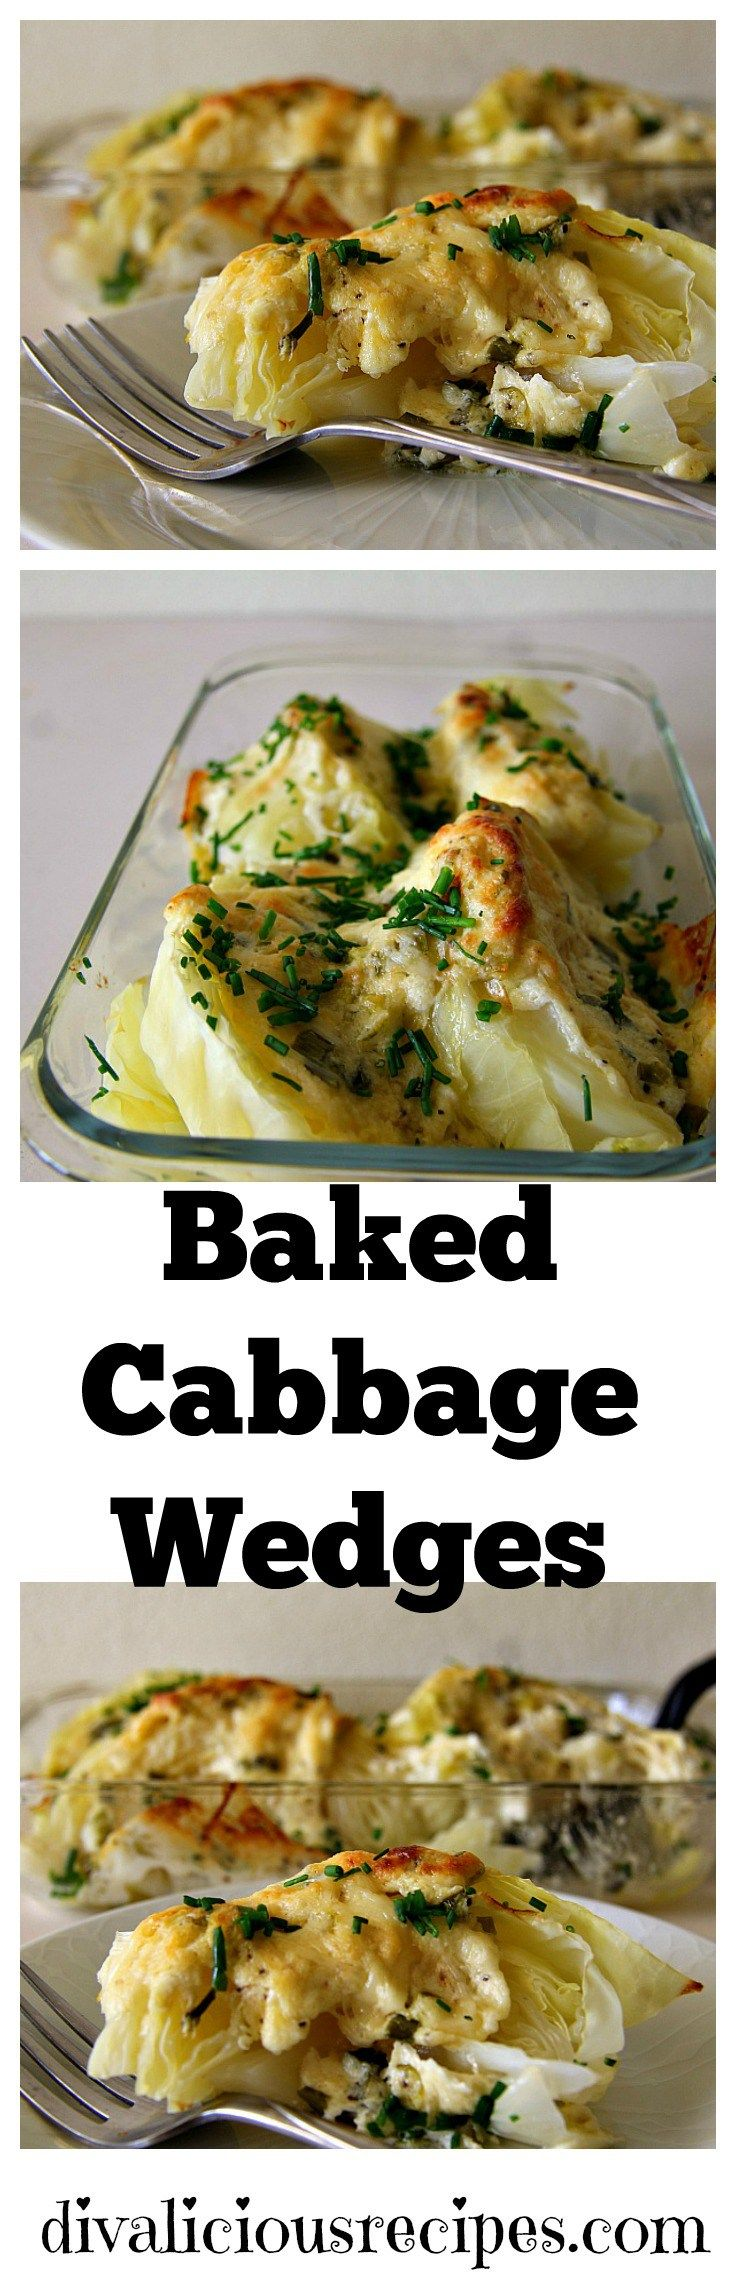 Cabbage wedges are covered with a cheese sauce and baked in the oven for a delicious cheesy cabbage casserole. An easy cabbage side dish recipe.